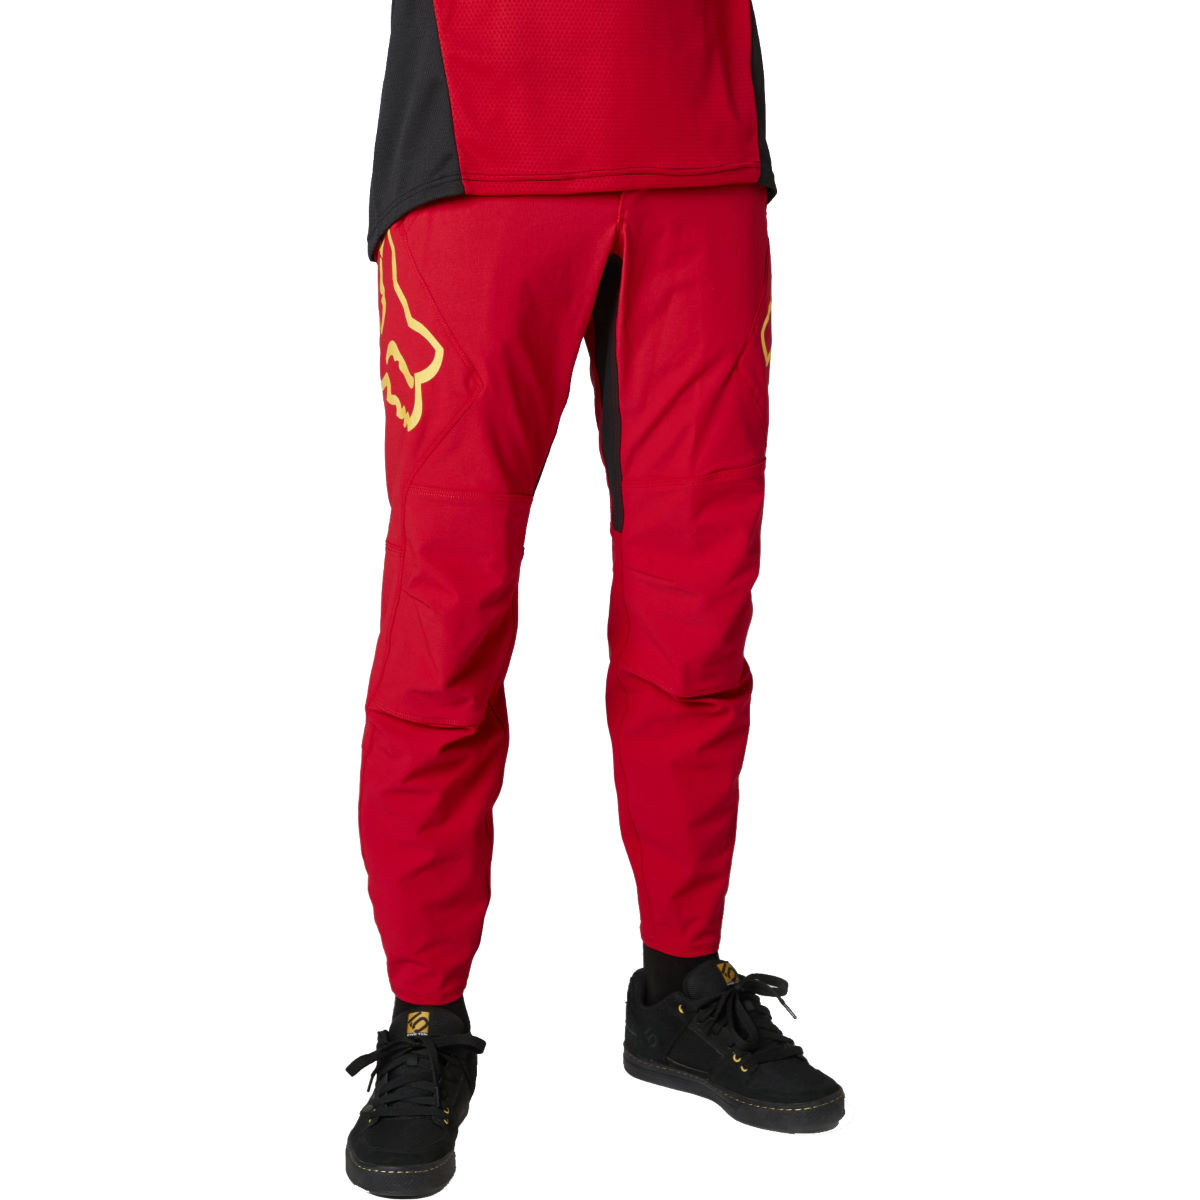 Fox Racing Defend Cycling Trousers Rs - 28 Chili  Trousers